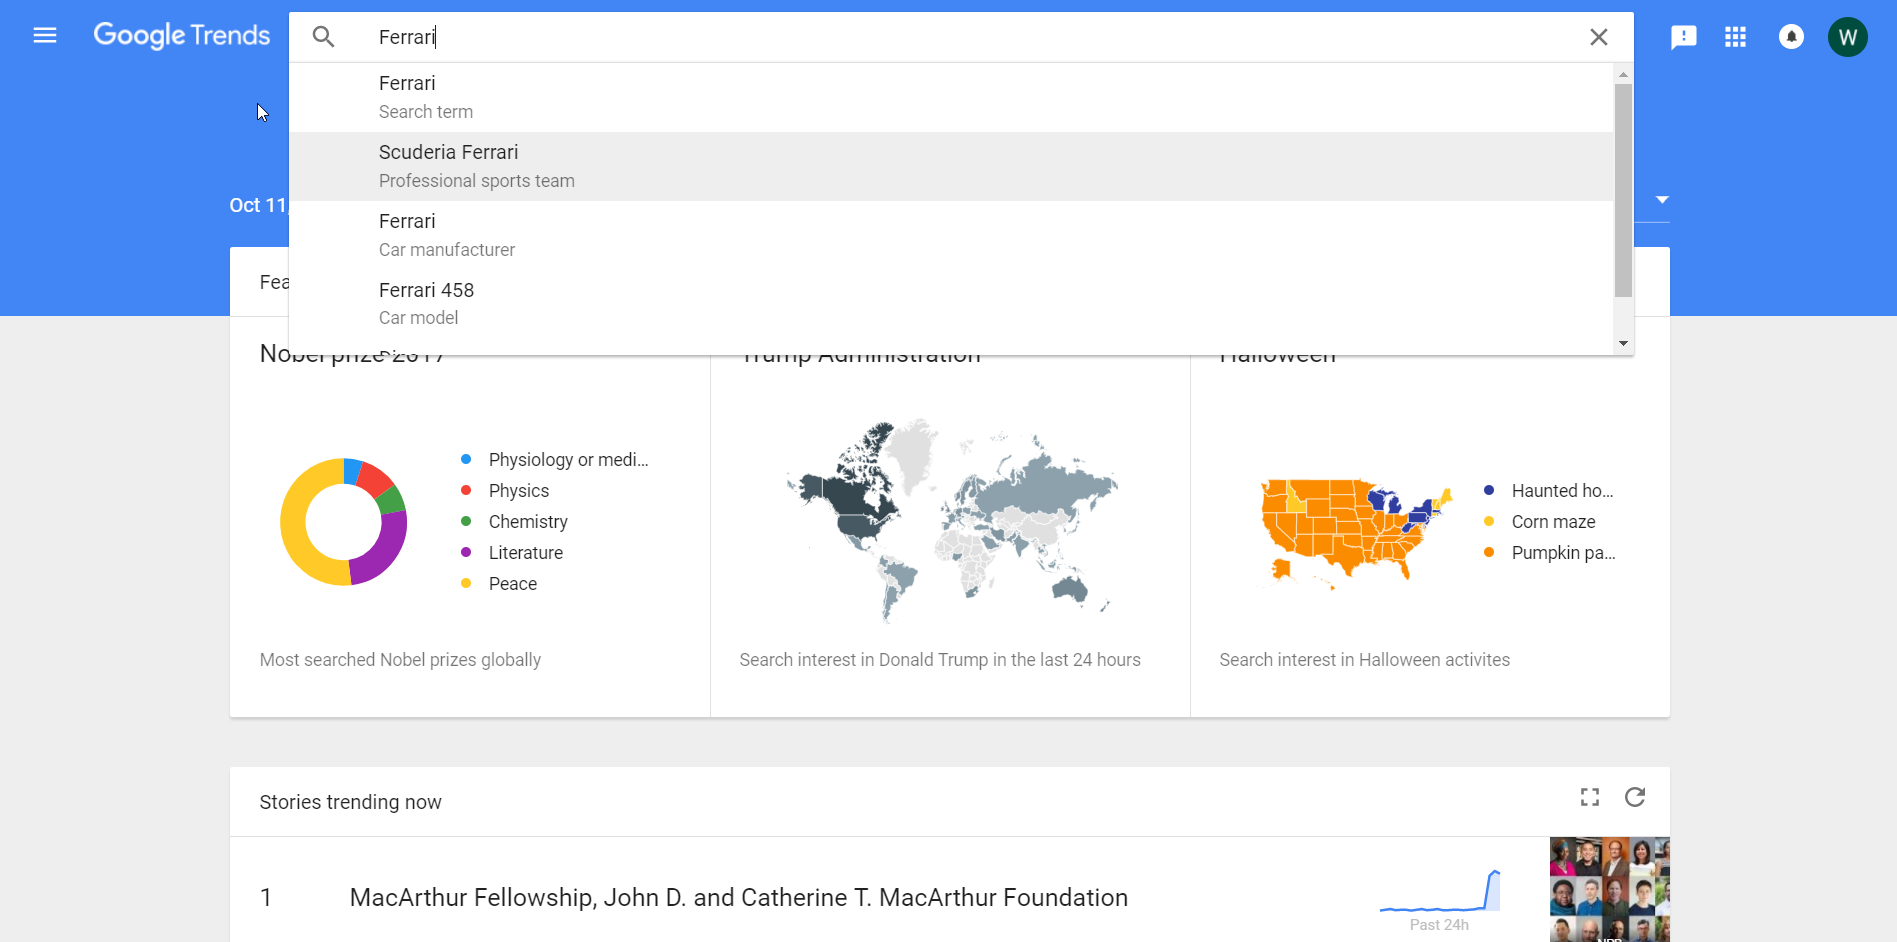 Google Trends Landing Page